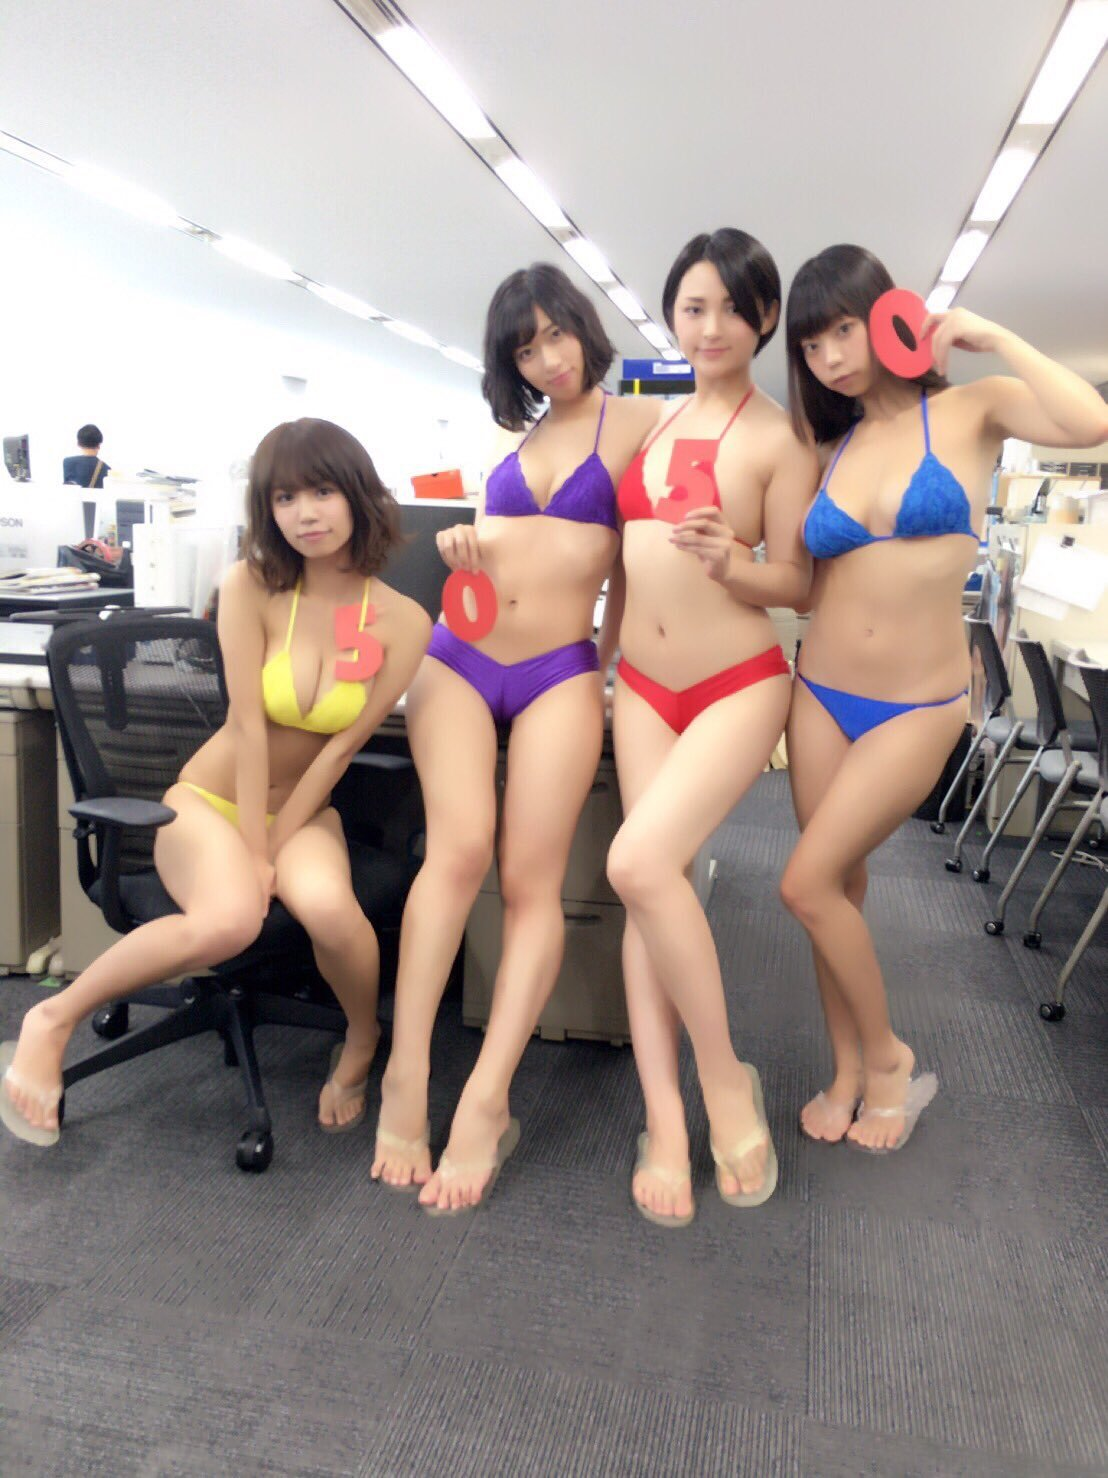 Sexy Sucharat Manaying naked (93 images) Video, YouTube, legs